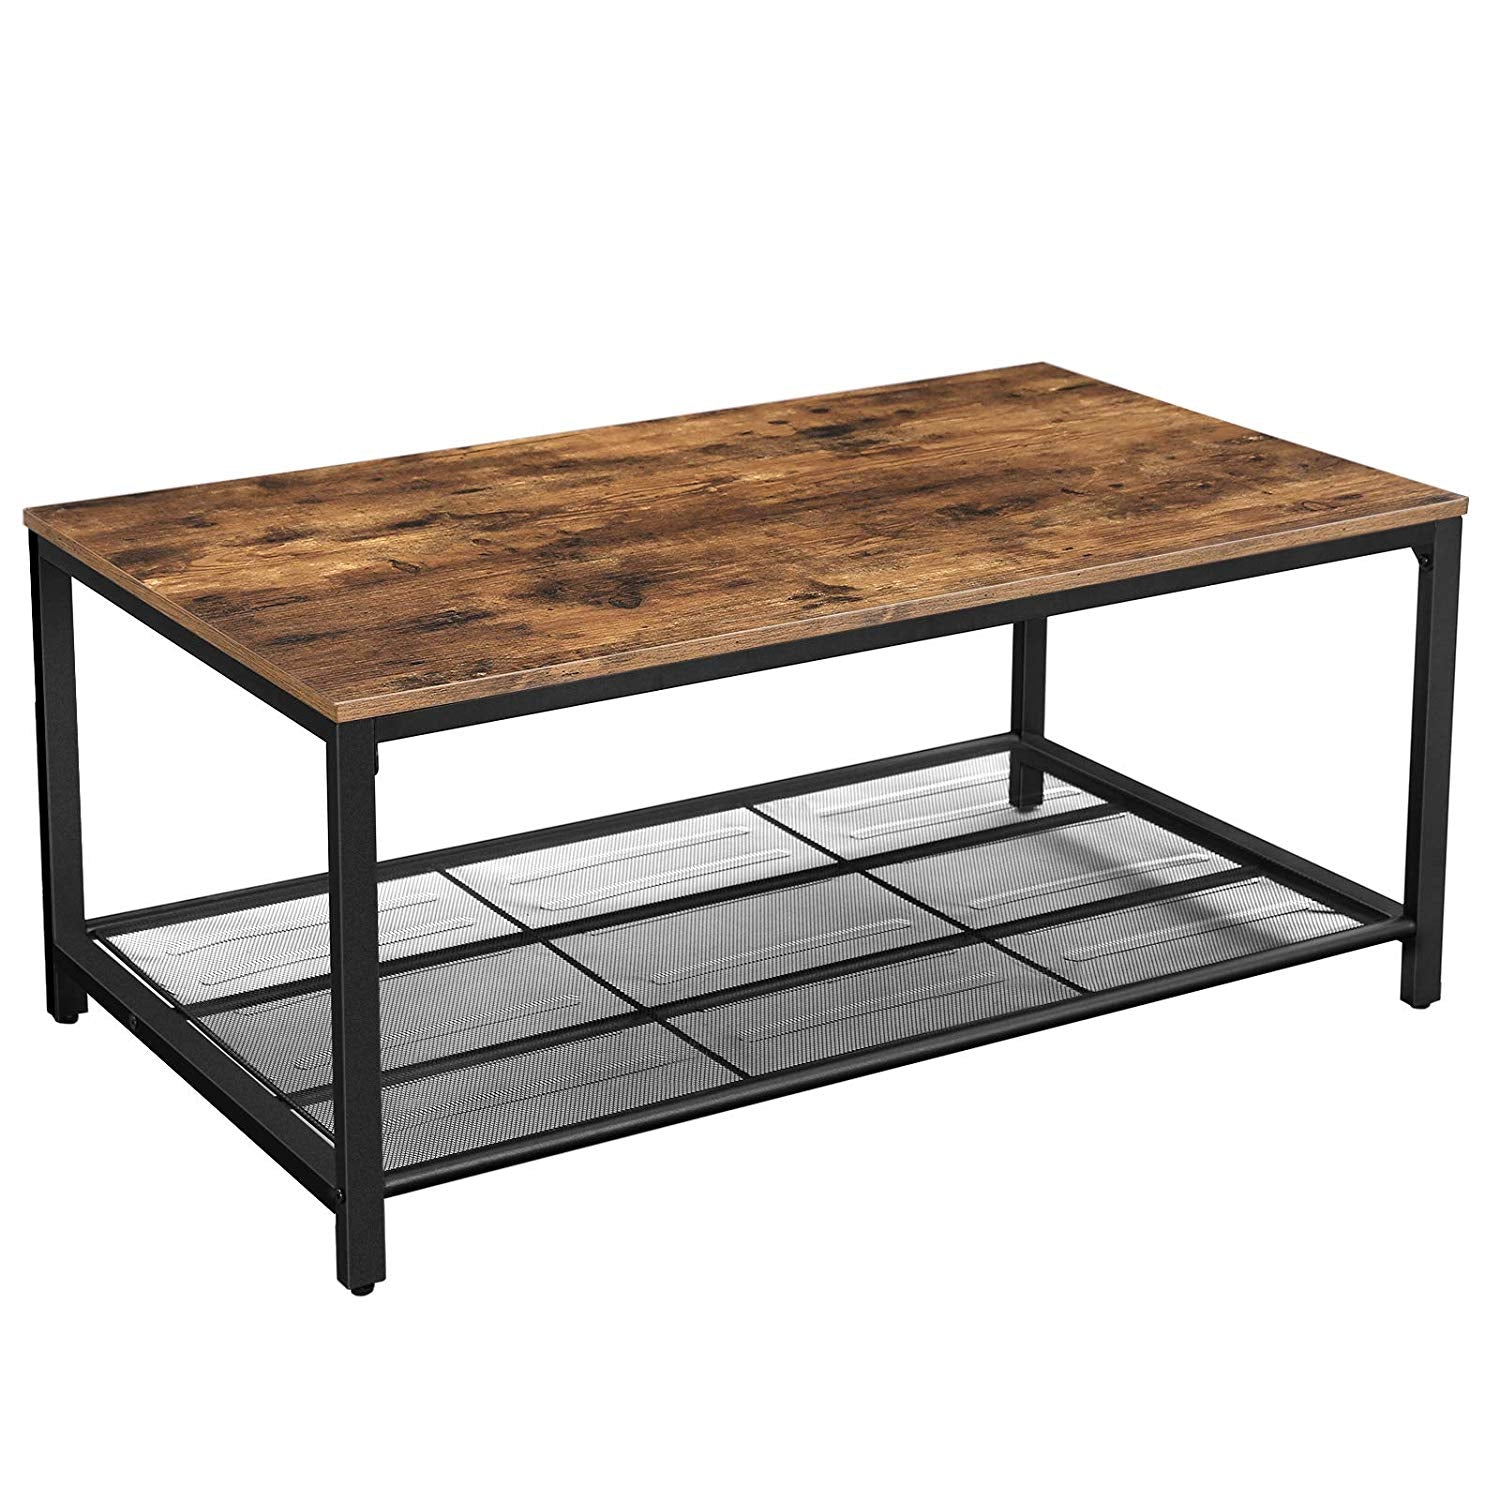 Enjoy fast, free nationwide shipping!  Family owned and operated, HawkinsWoodshop.com is your one stop shop for affordable furniture.  Shop HawkinsWoodshop.com for solid wood & metal modern, traditional, contemporary, industrial, custom, rustic, and farmhouse furniture including our Victor Industrial Coffee Table w/ Mesh Shelf.